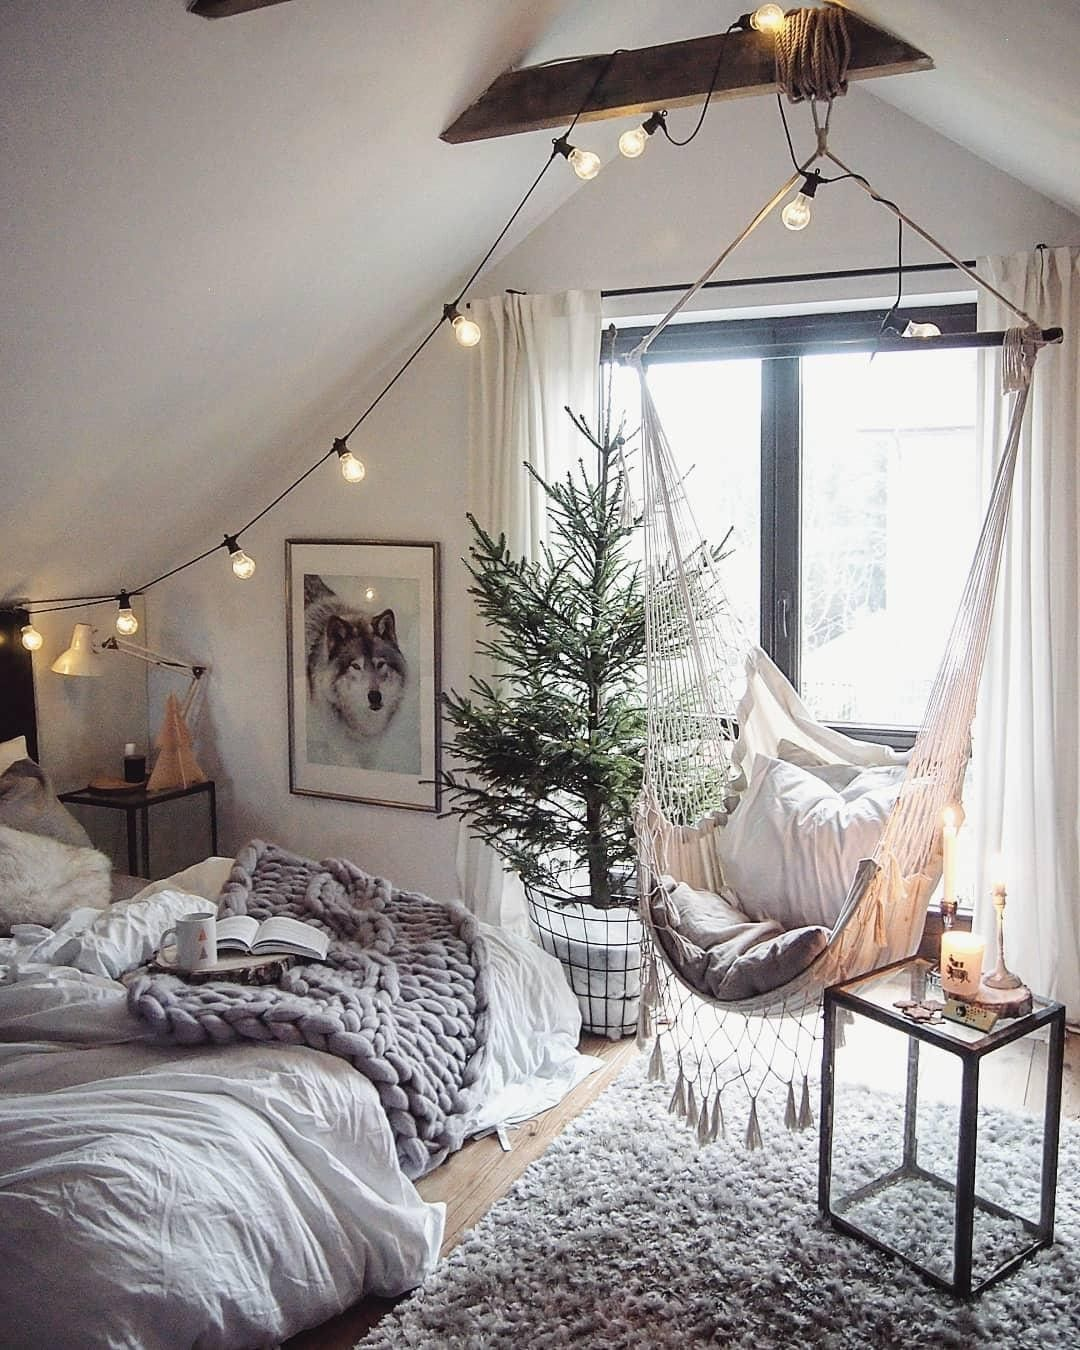 Holiday Decoration Ideas For 26/26 — Grayson Living